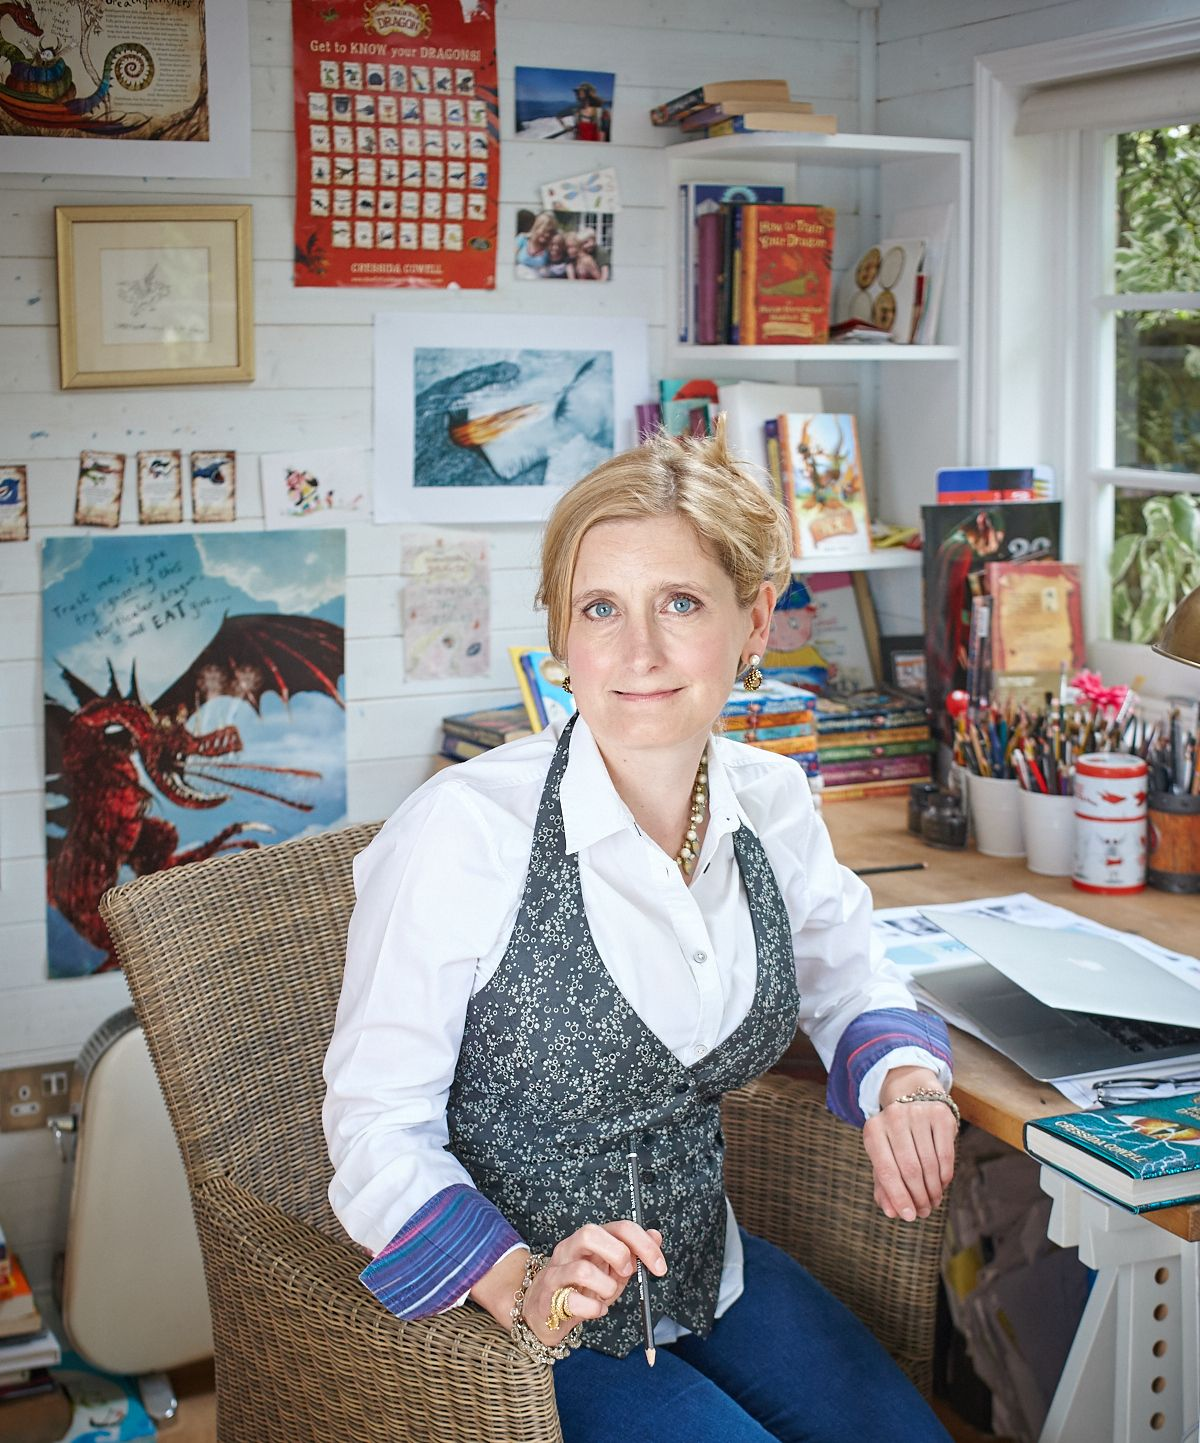 THE BIG INTERVIEW: Cressida Cowell speaks to the County Gazette about dragons, wizards and magic